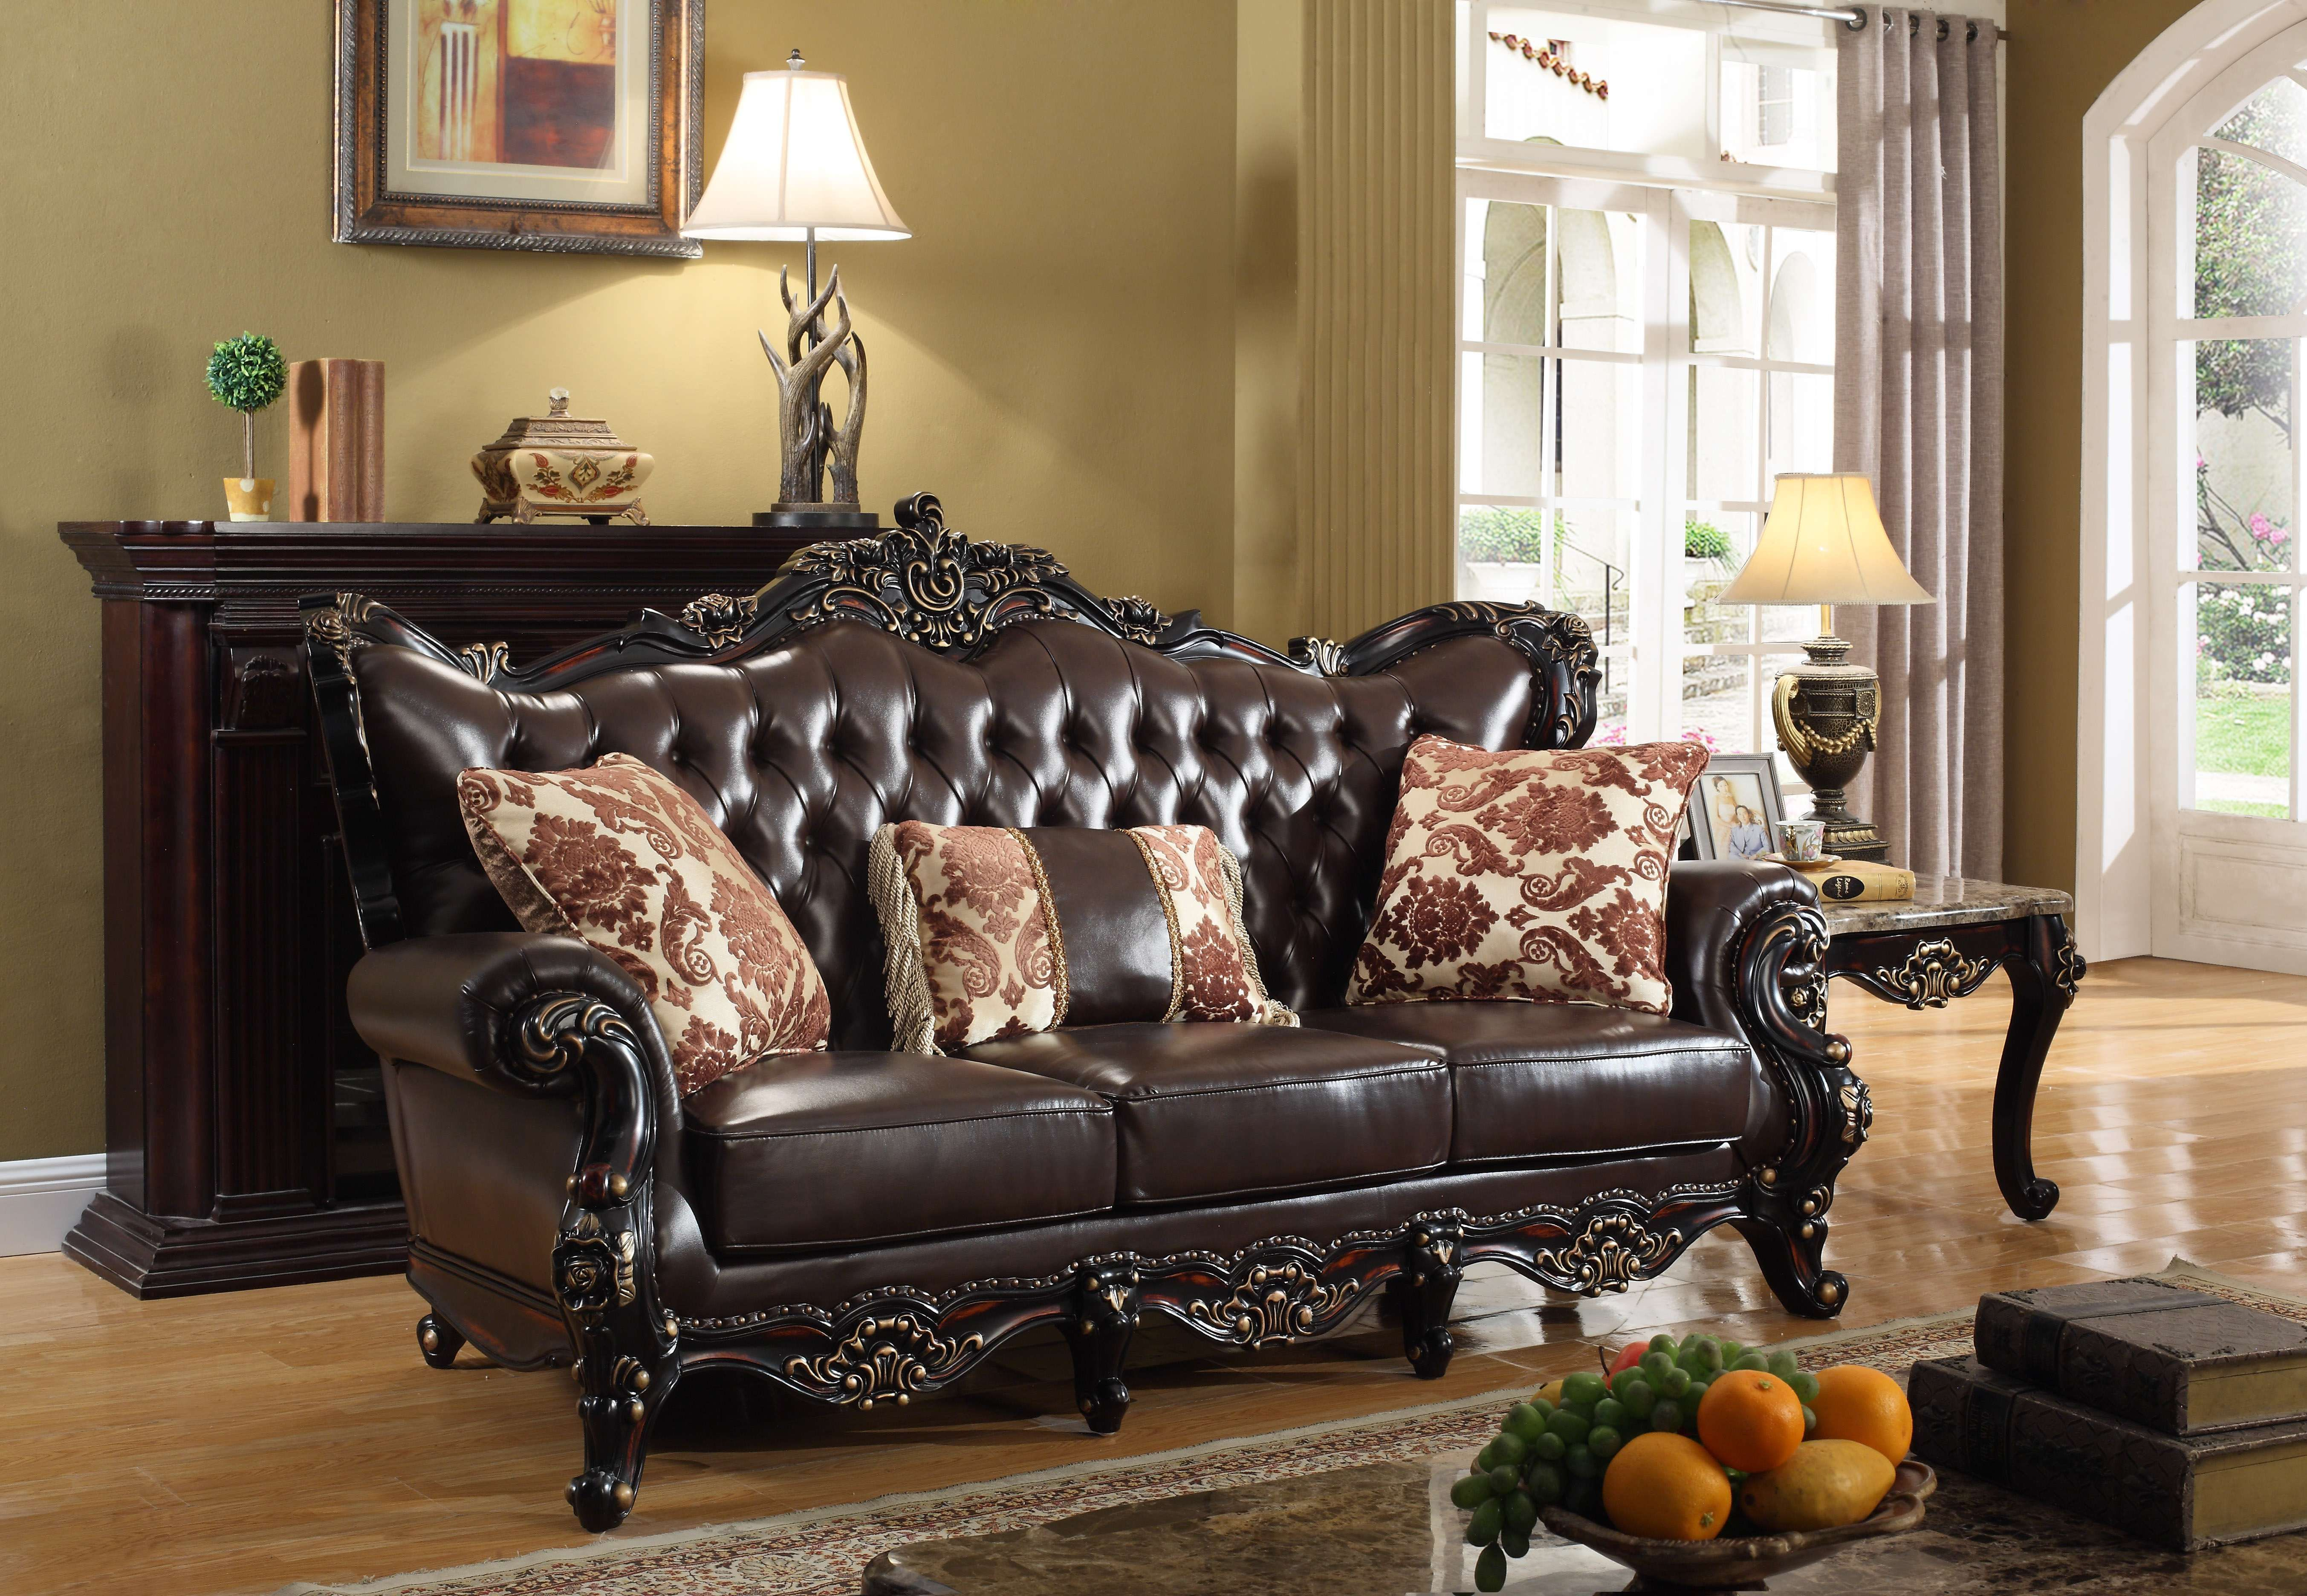 Lowest Price On Meridian Barcelona Brown Leather Sofa 675 S Shop